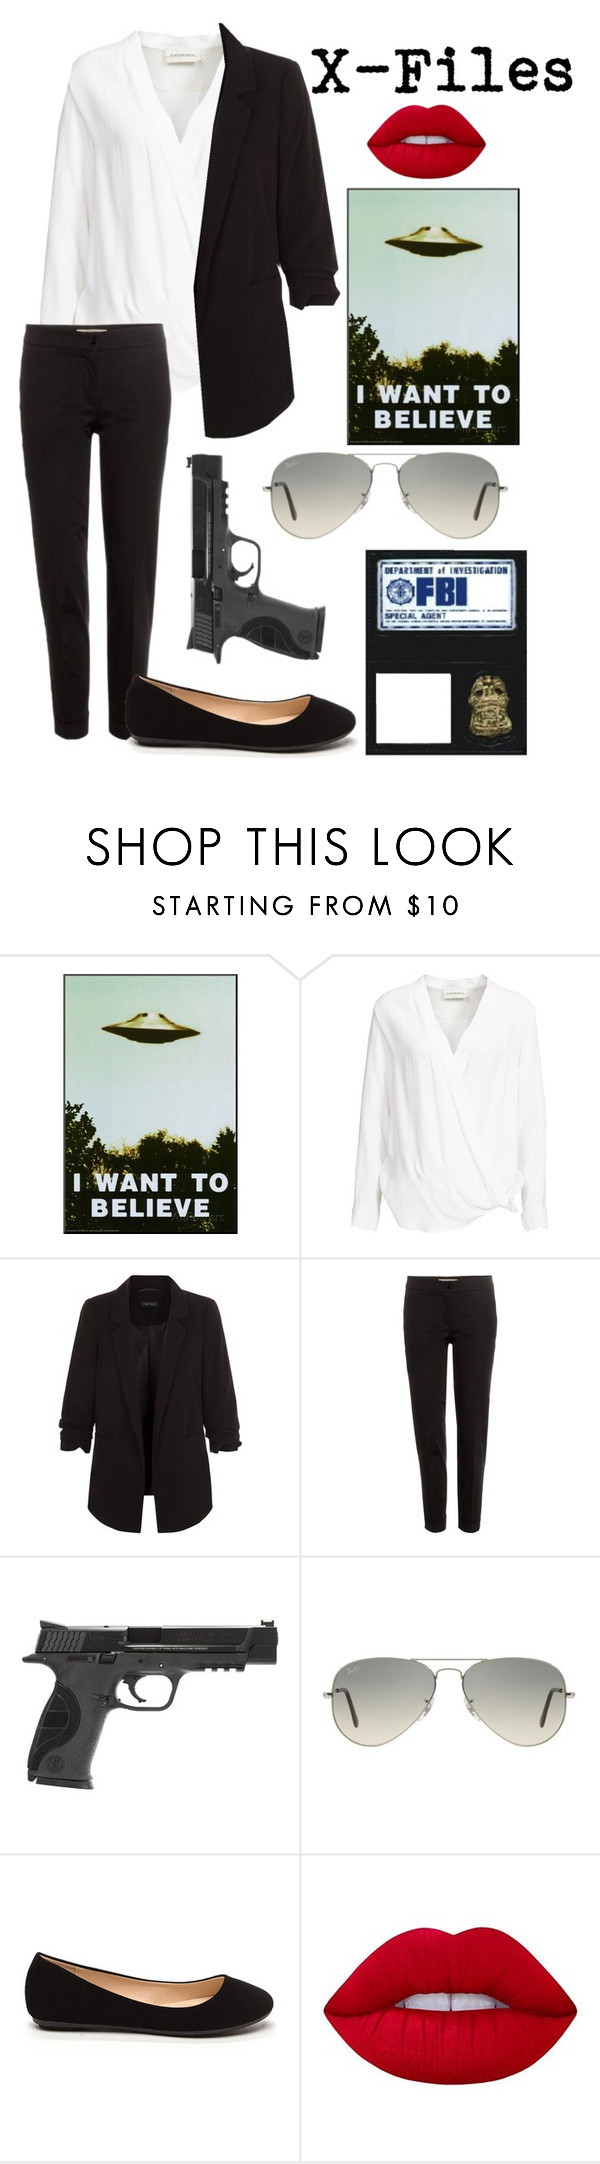 """"""" X-Files """" by pockynoodles ❤ liked on Polyvore featuring By Malene Birger, New Look, Etro, Smith & Wesson, Ray-Ban and Lime Crime"""